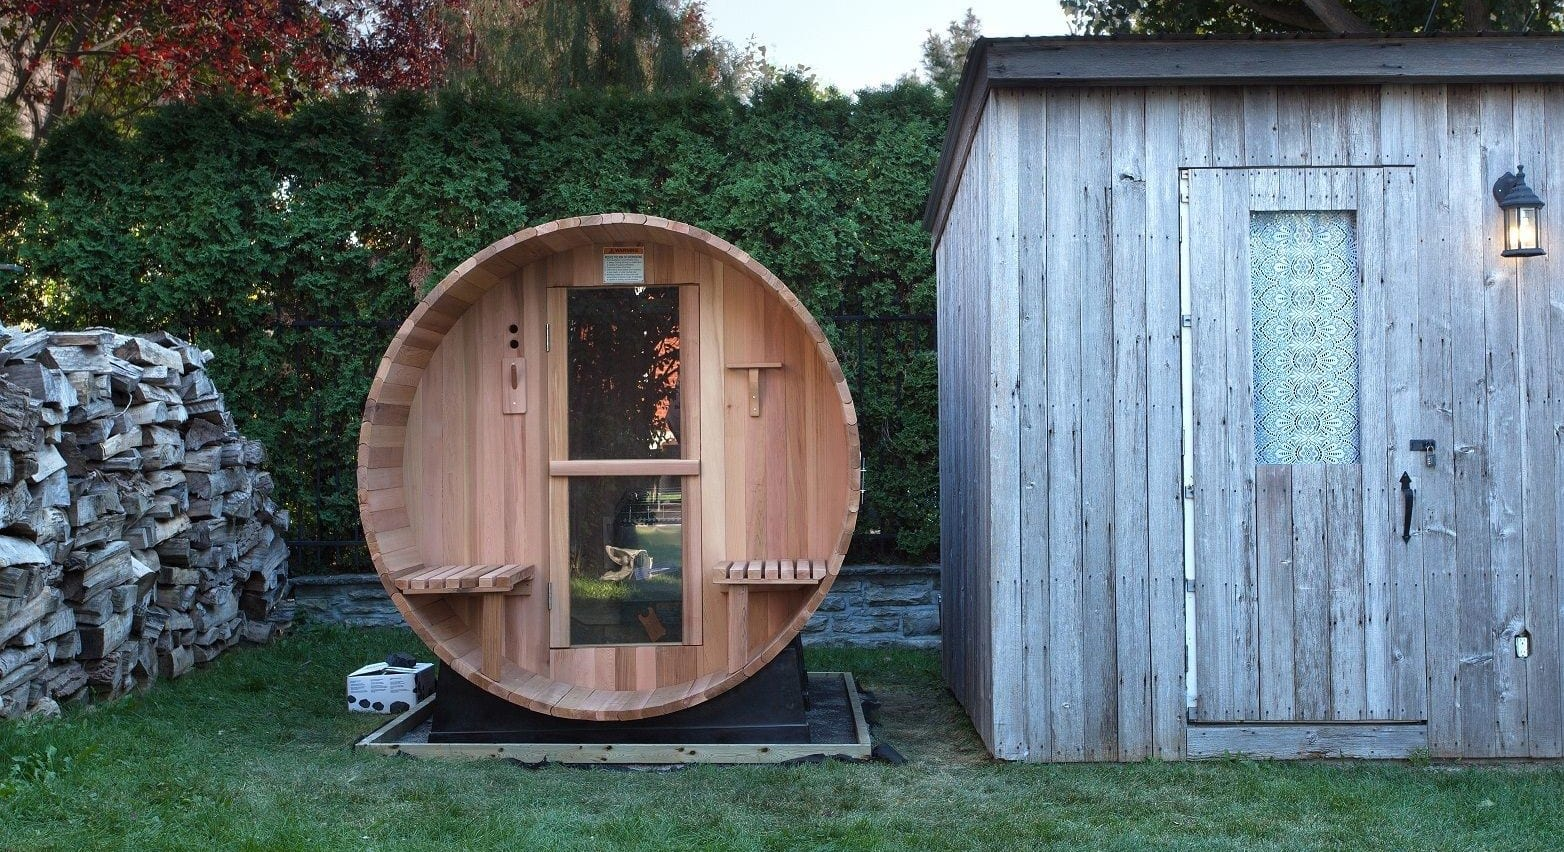 Find The Perfect Home Outdoor Sauna For Sale | Reviews, Tips, and Kits